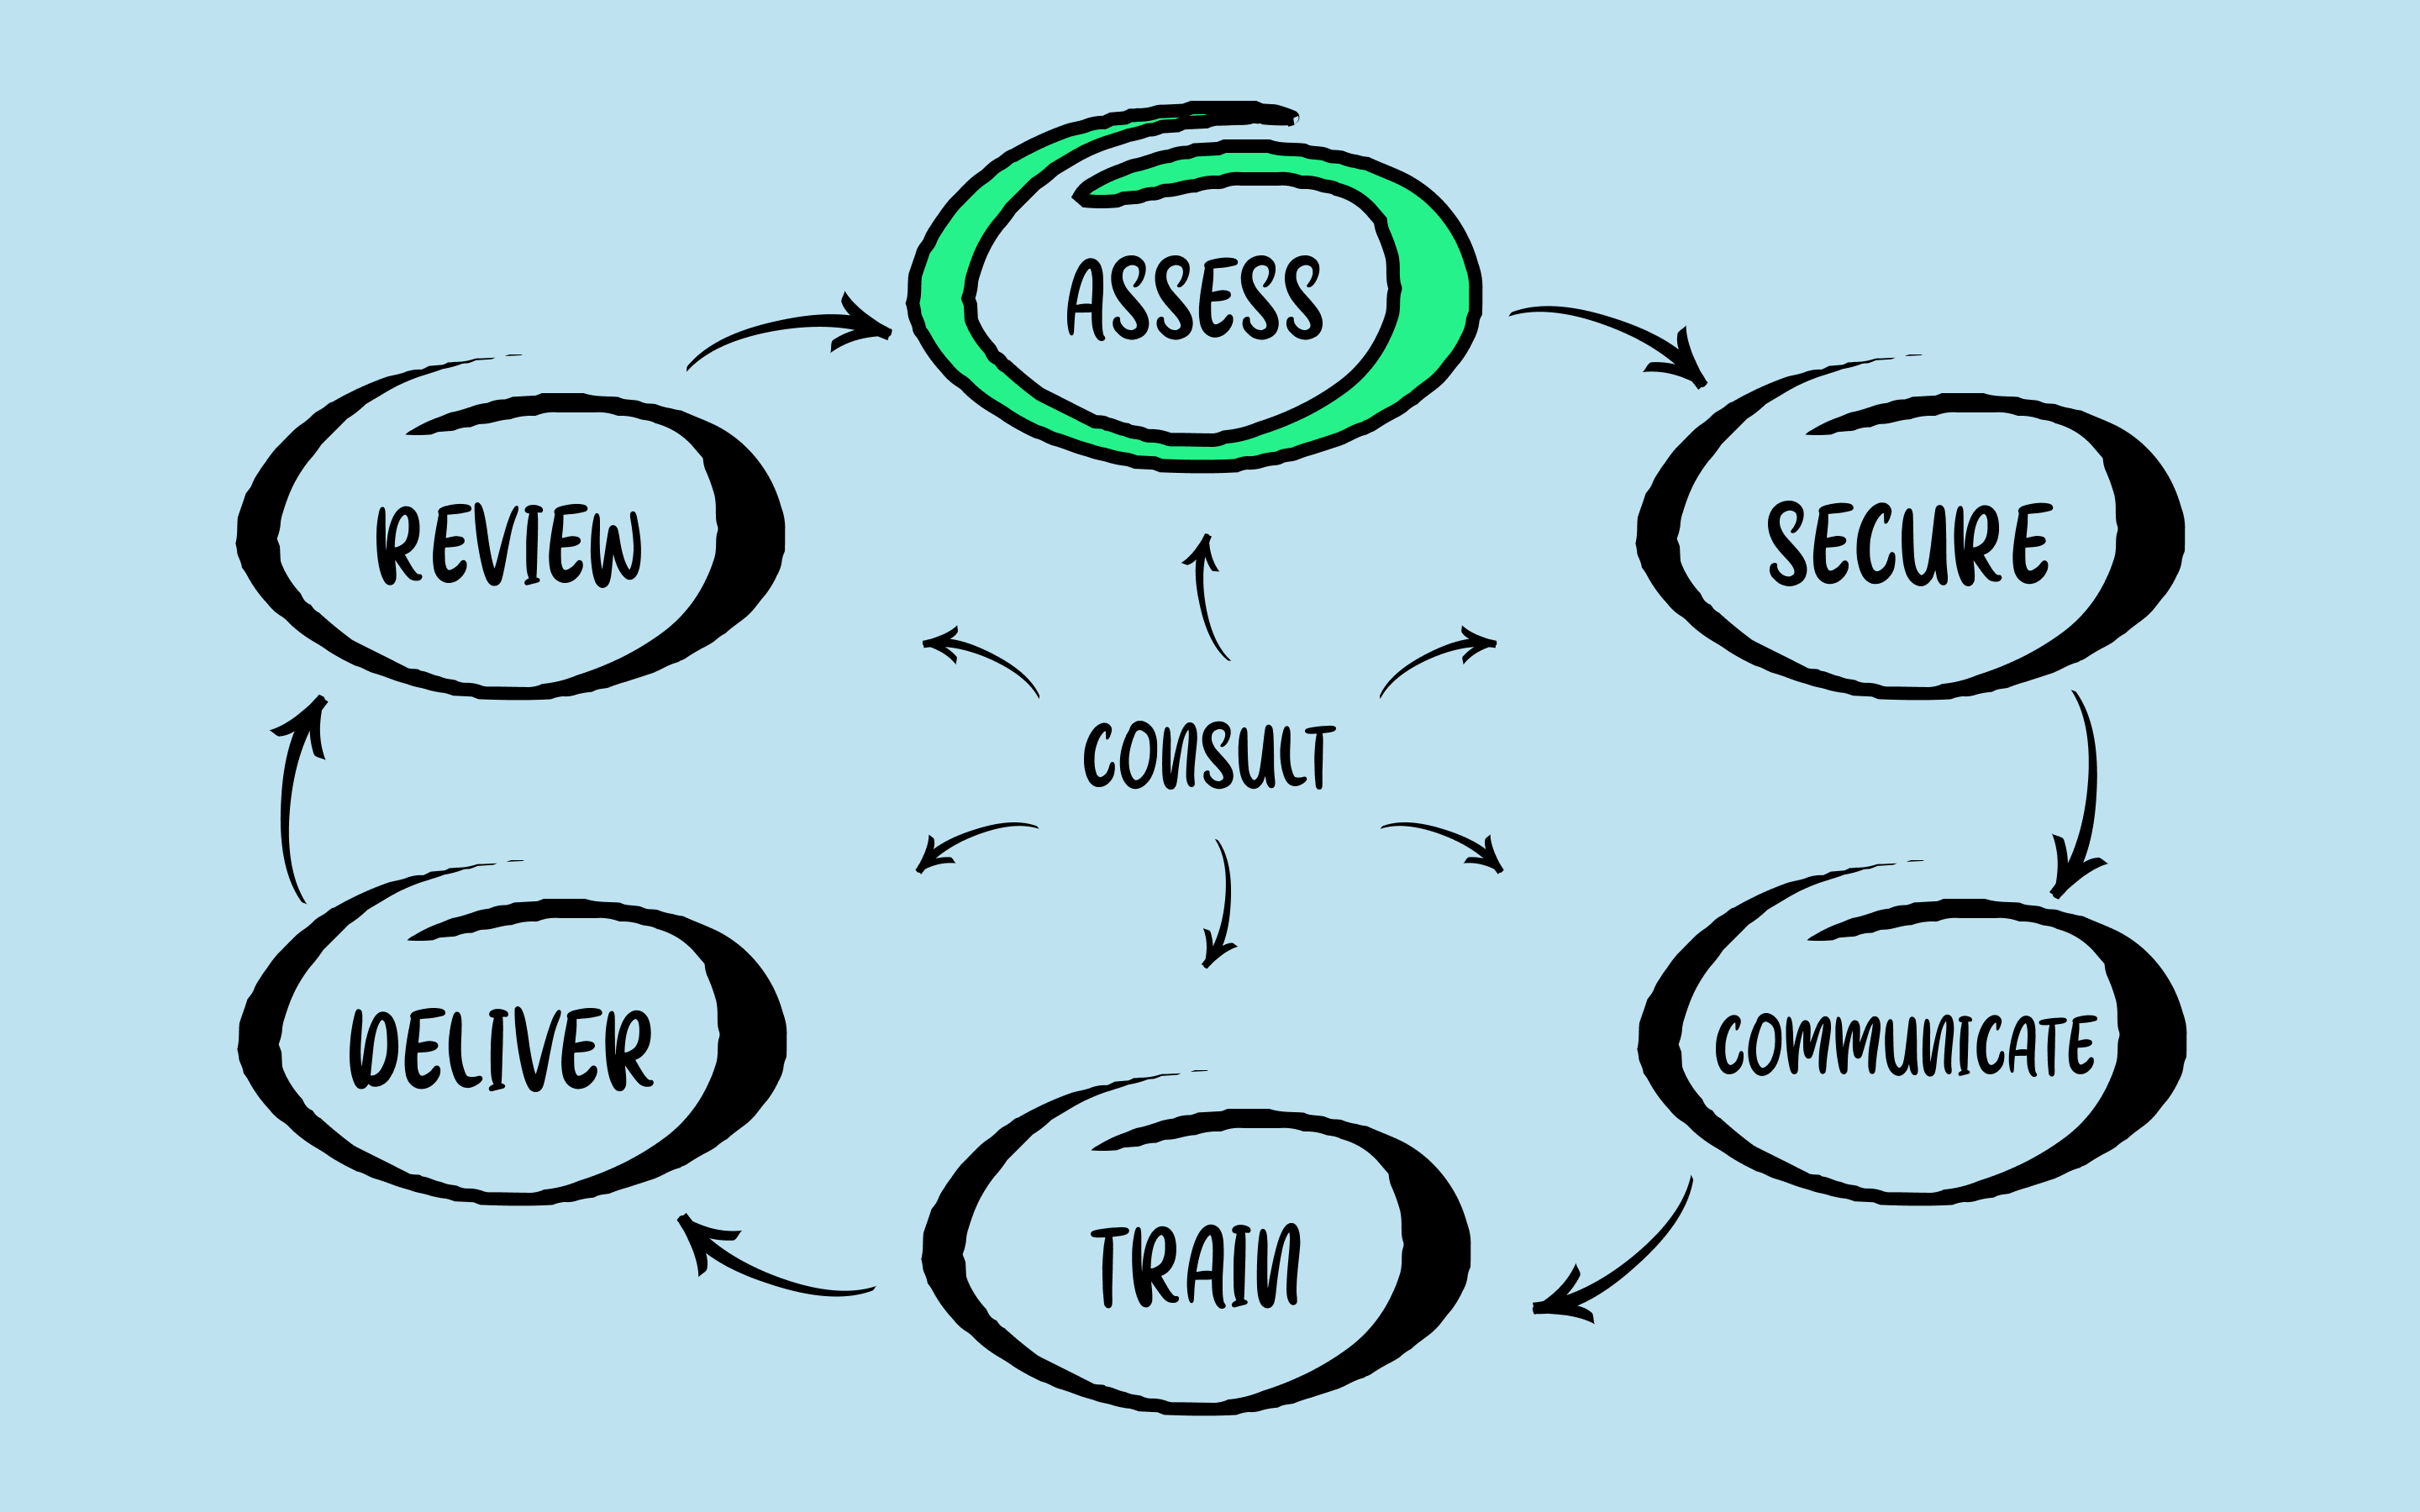 Diagram showing 'assess' highlighted